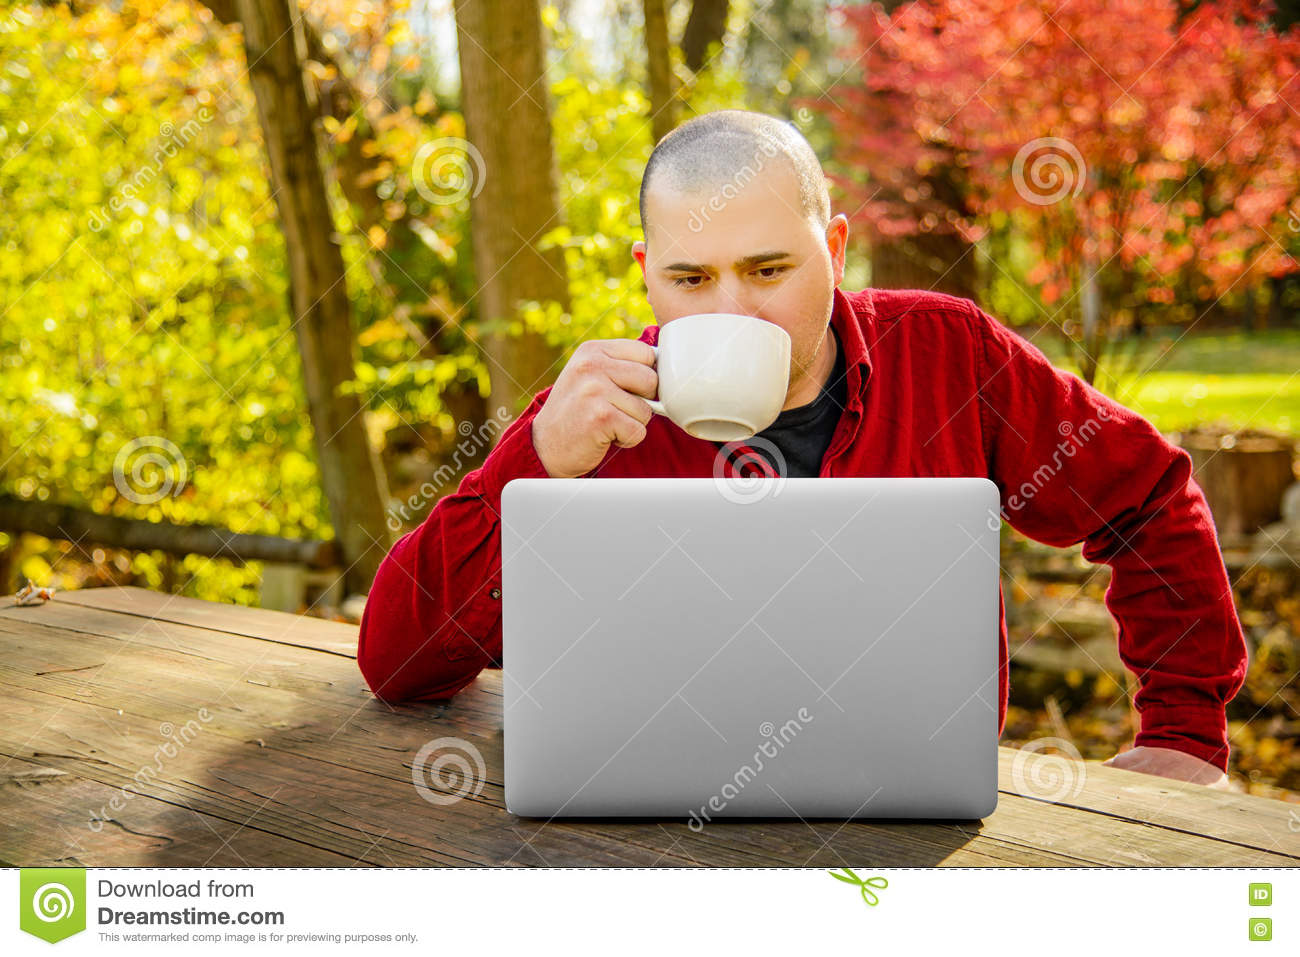 Man outdoors looking at Laptop and Drinking Coffee